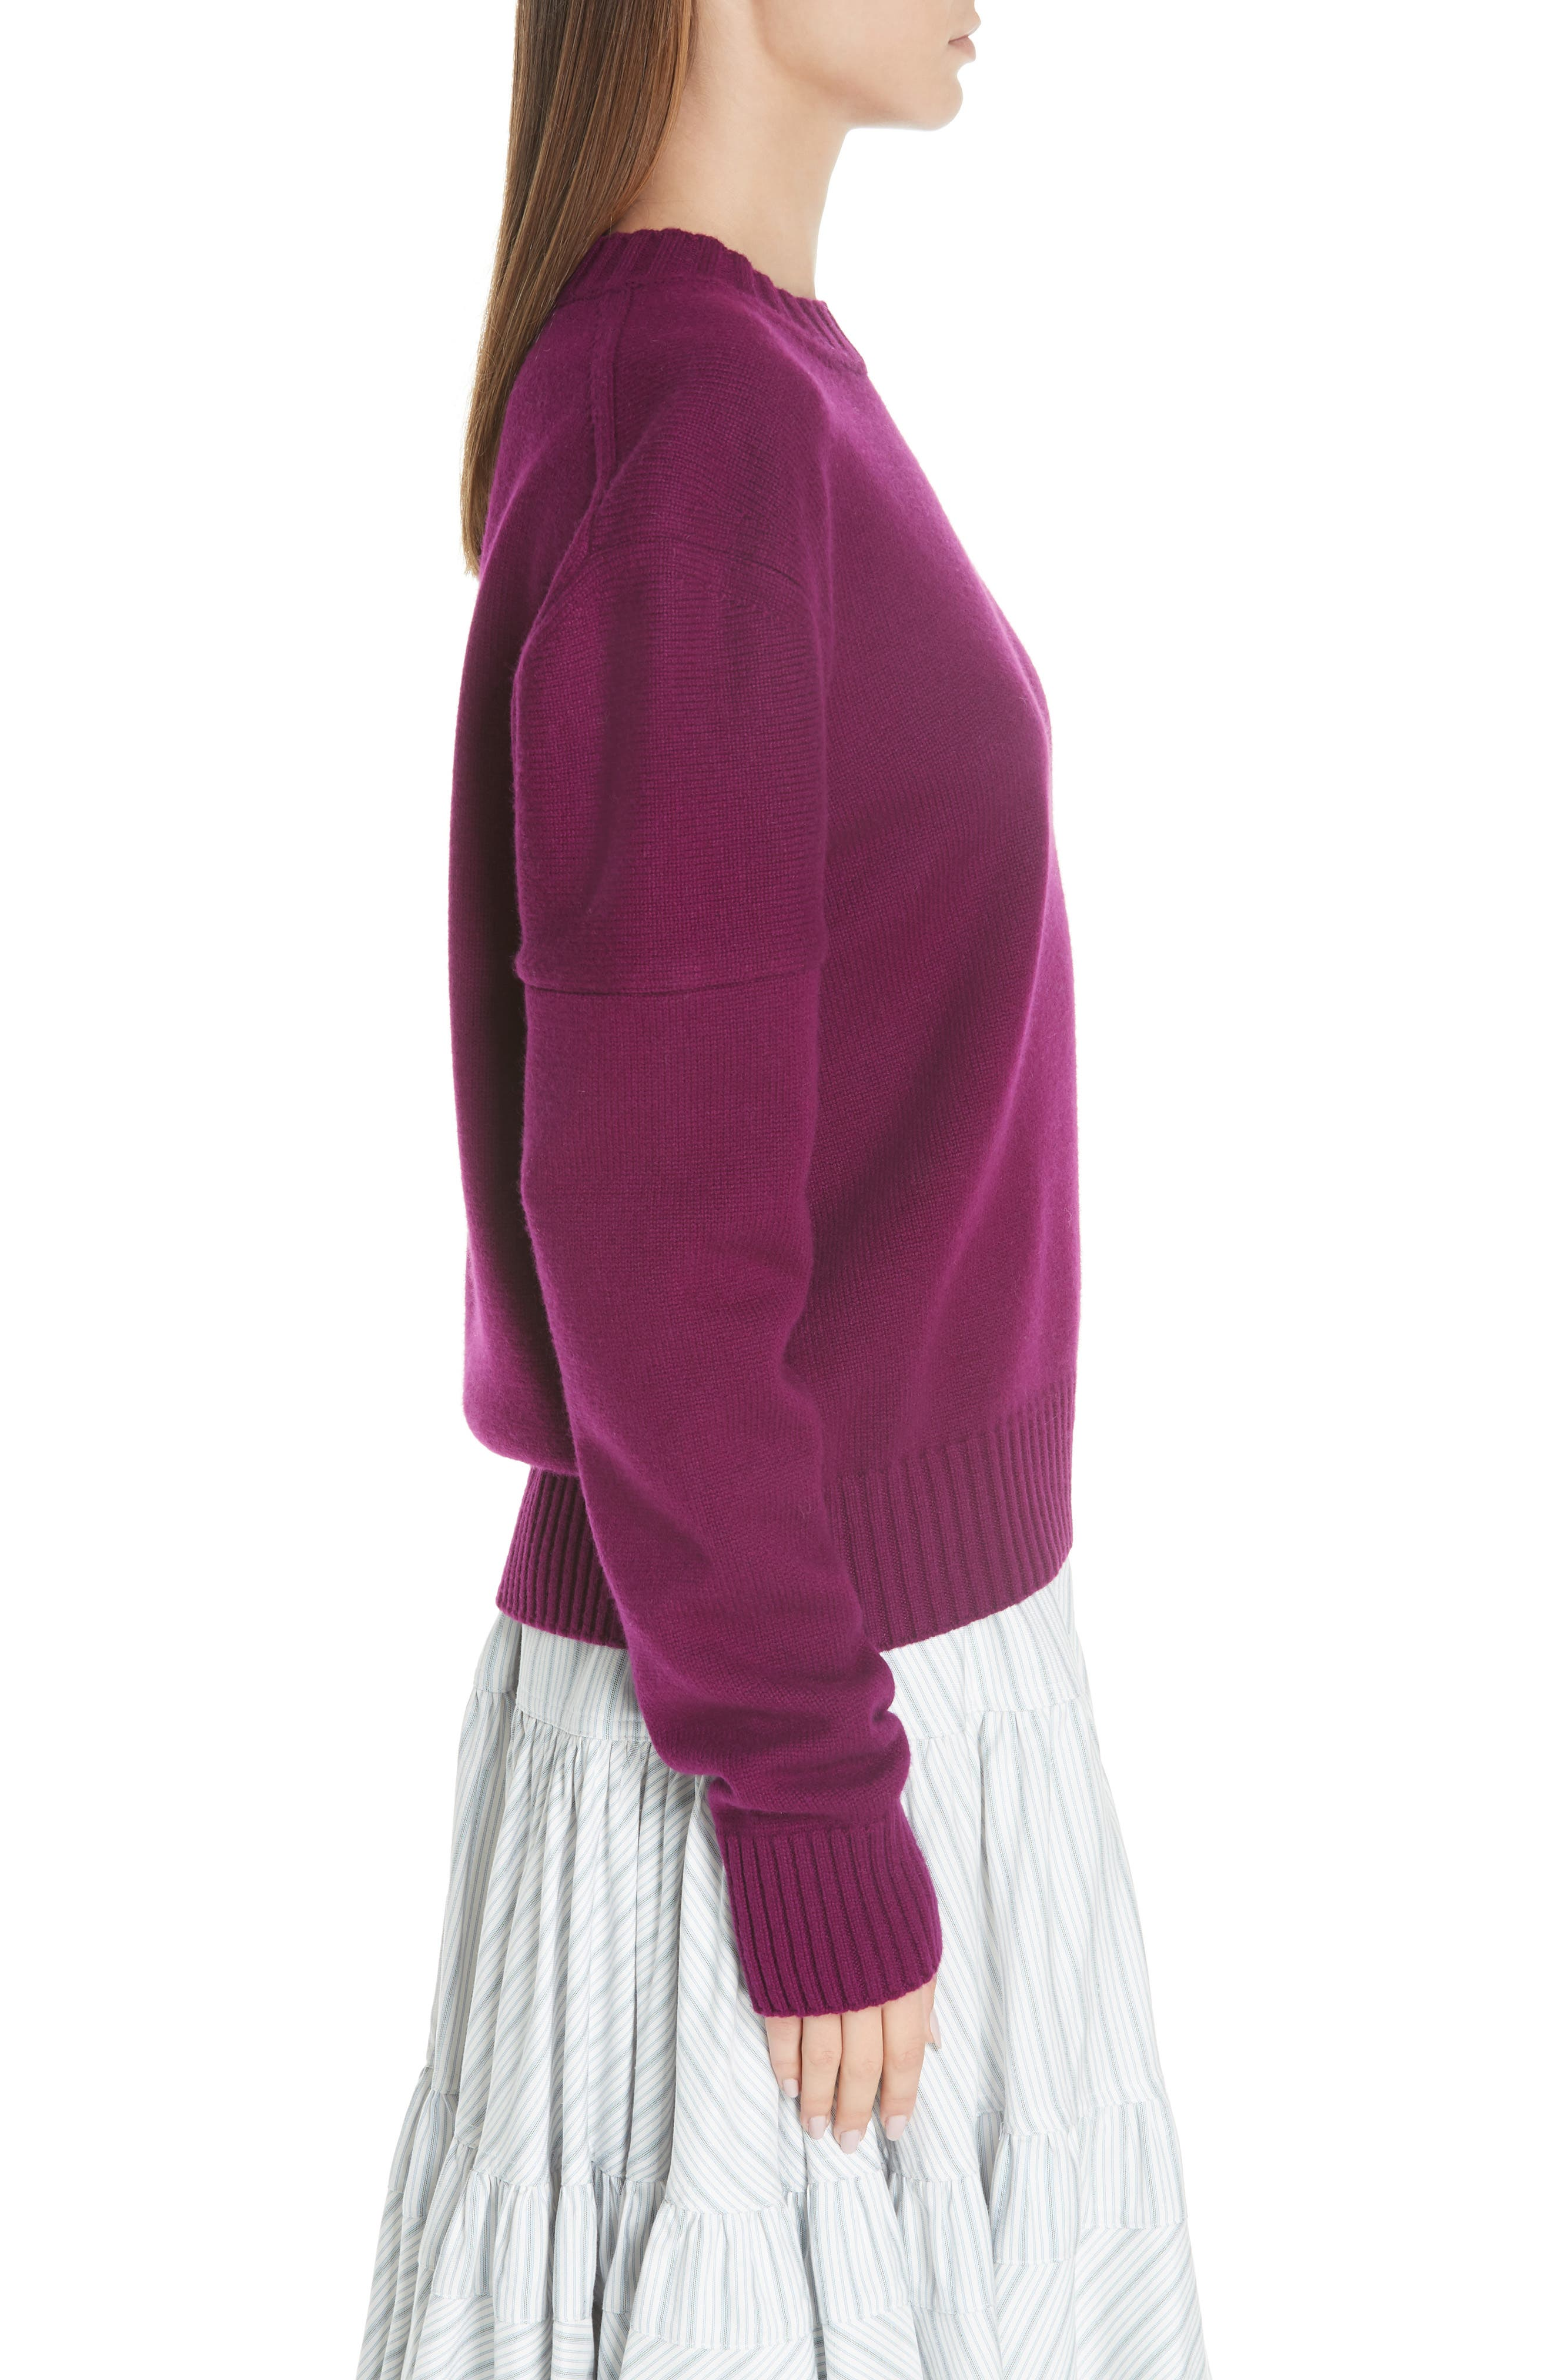 Cashmere Stripe Sleeve Sweater,                             Alternate thumbnail 3, color,                             DEEP PURPLE BRIGHT BLUE WHITE